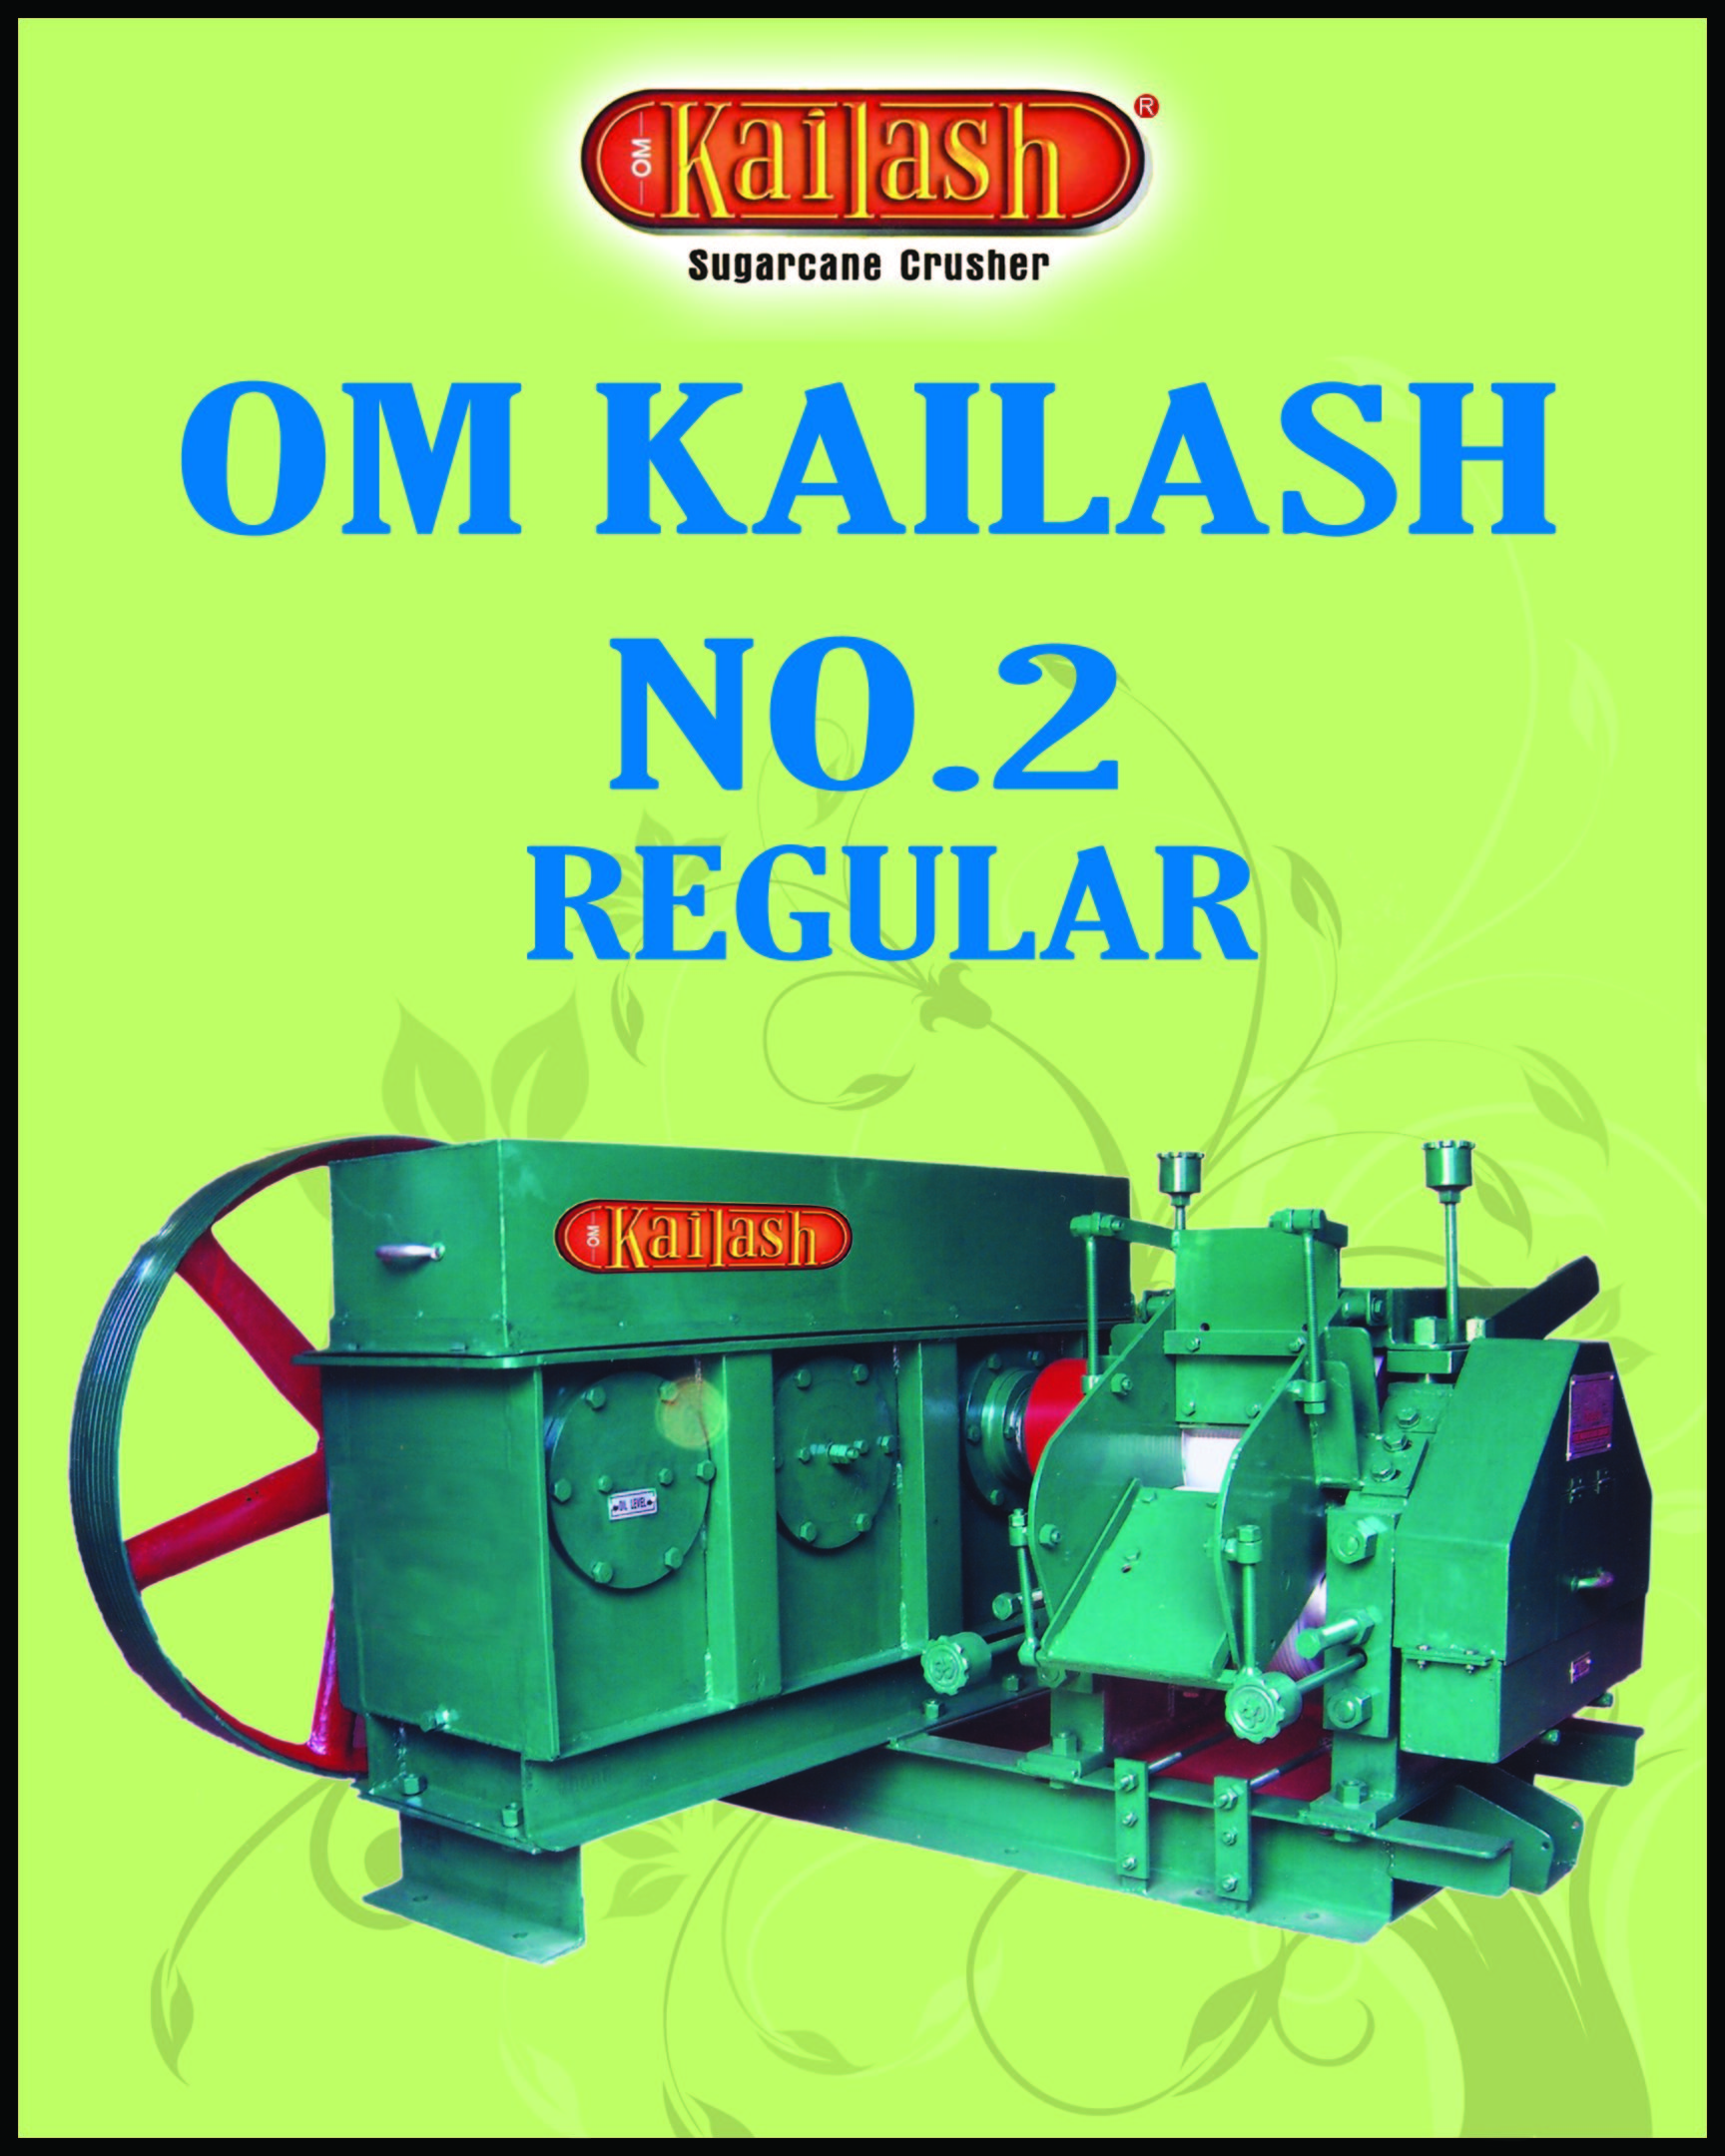 Regular Model Single Mill Sugarcane Crusher